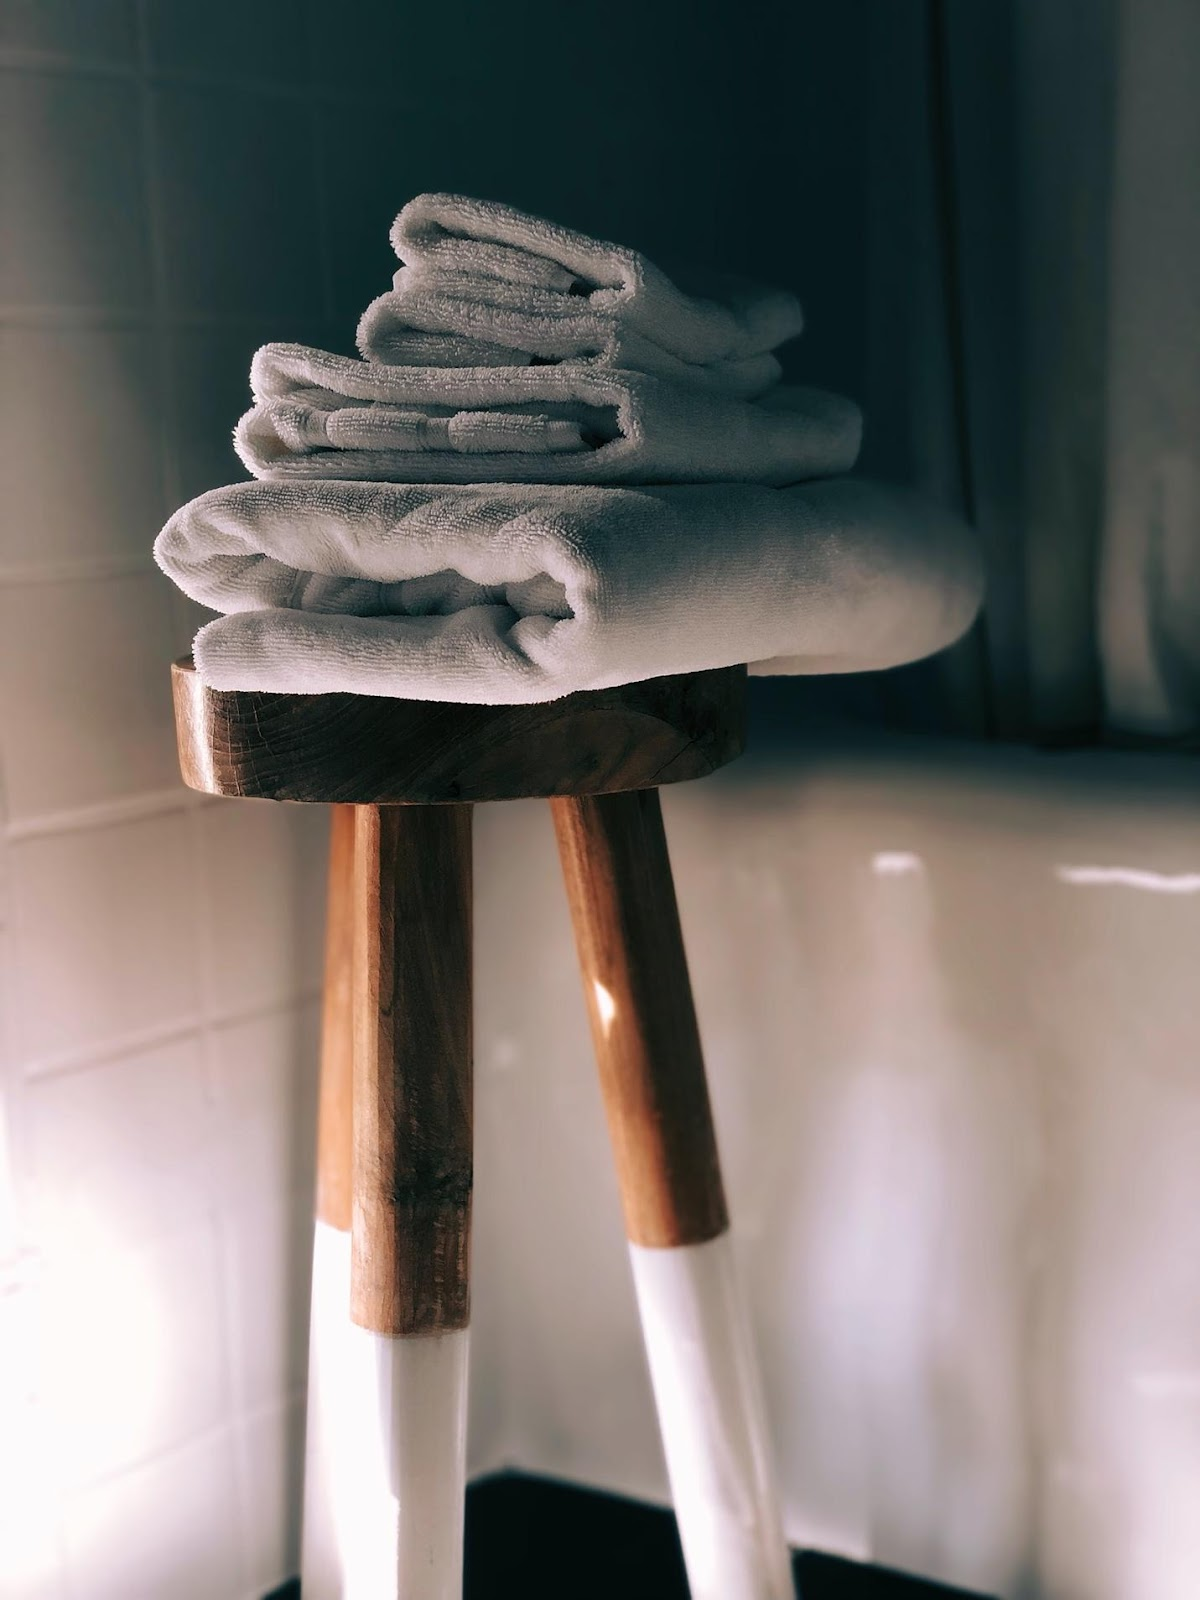 towels on a stool in the bathroom